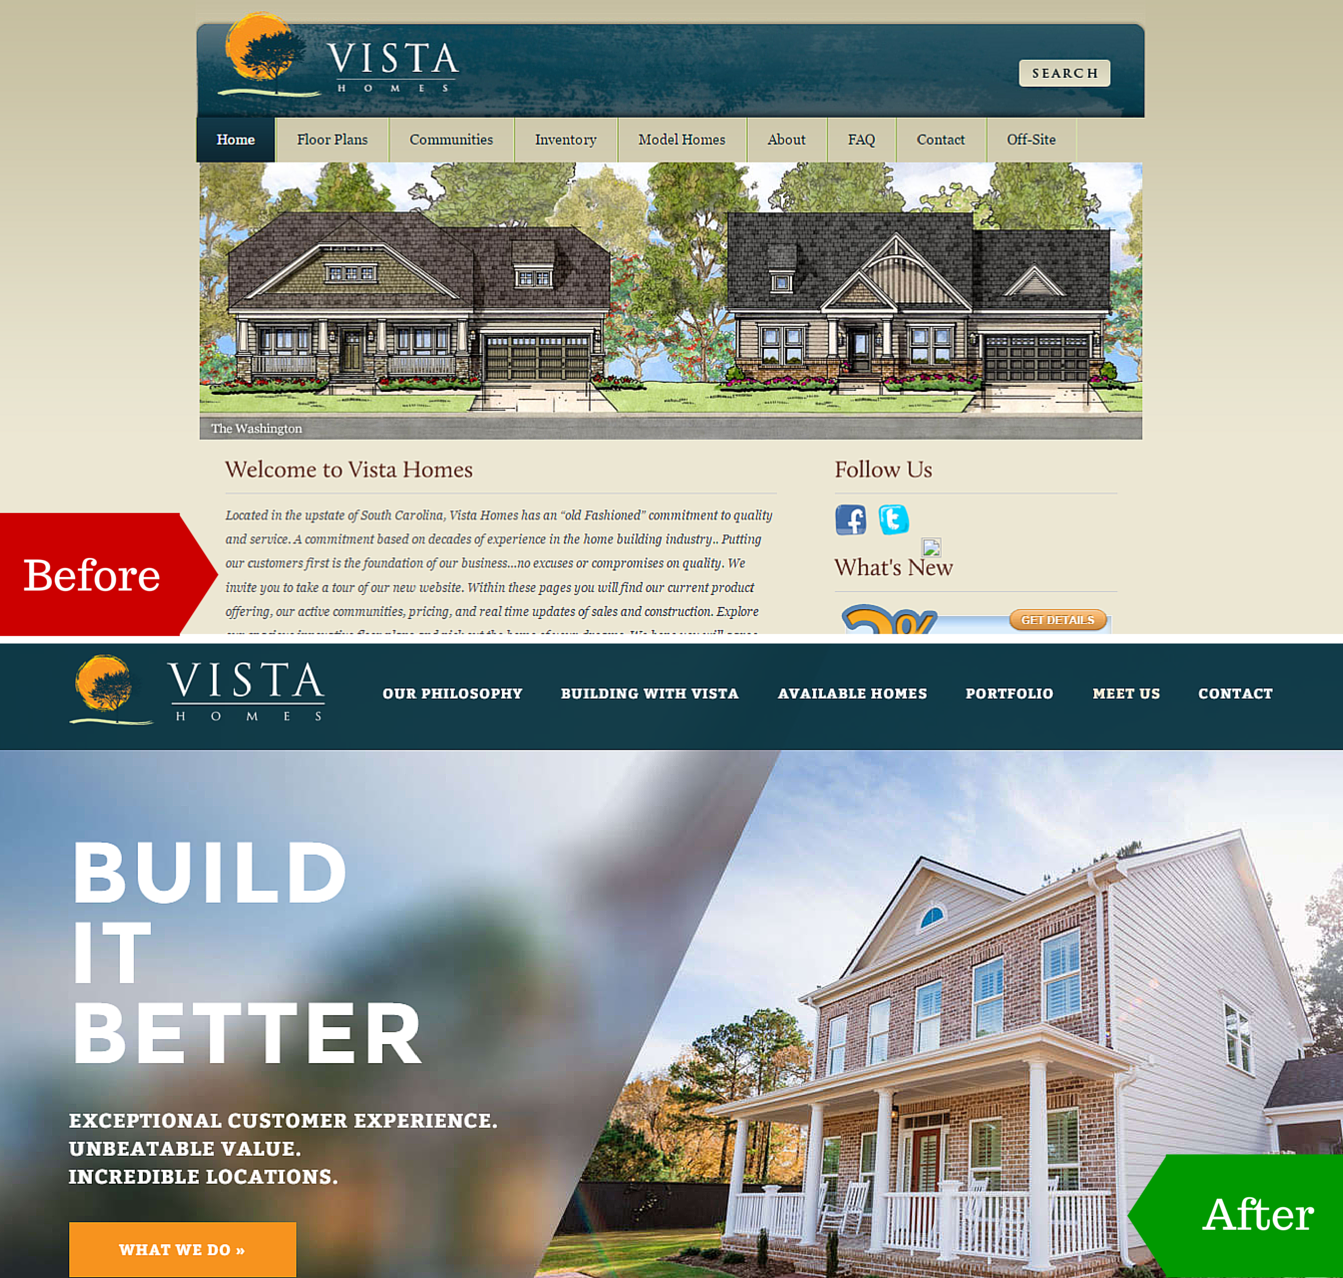 Before and After image of a client's website